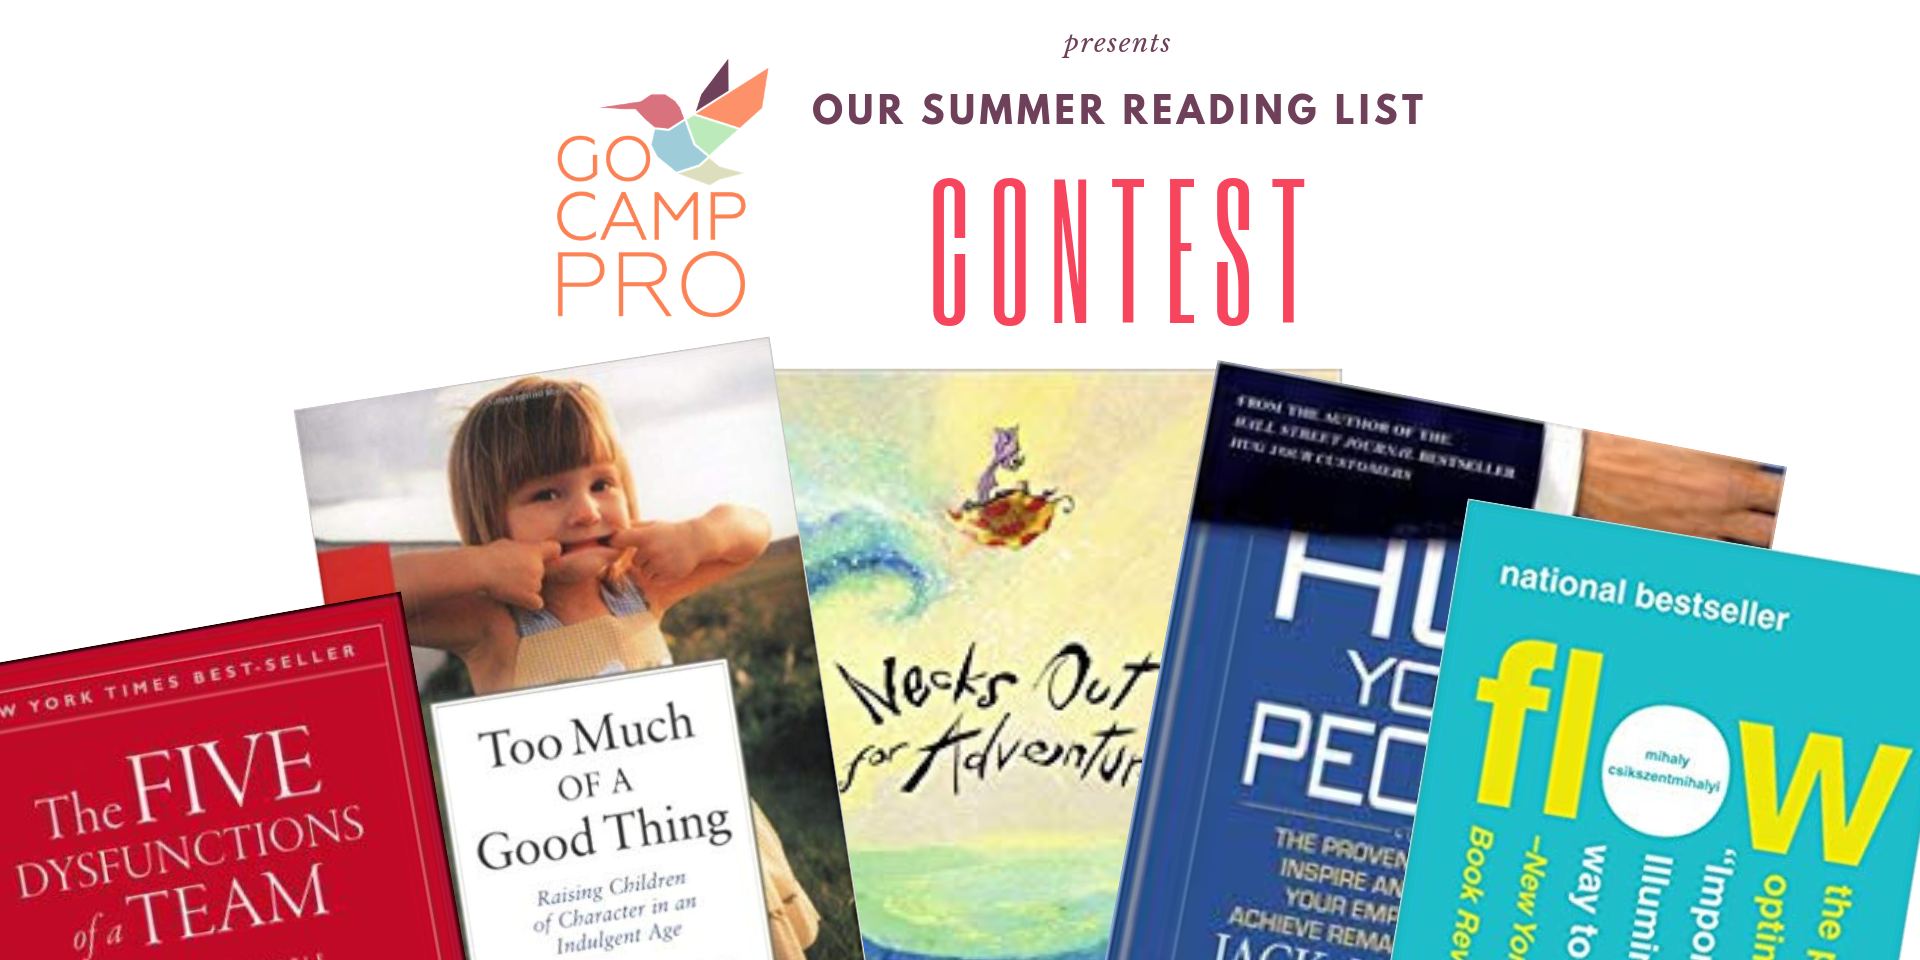 Go Camp Pro Book contest.png